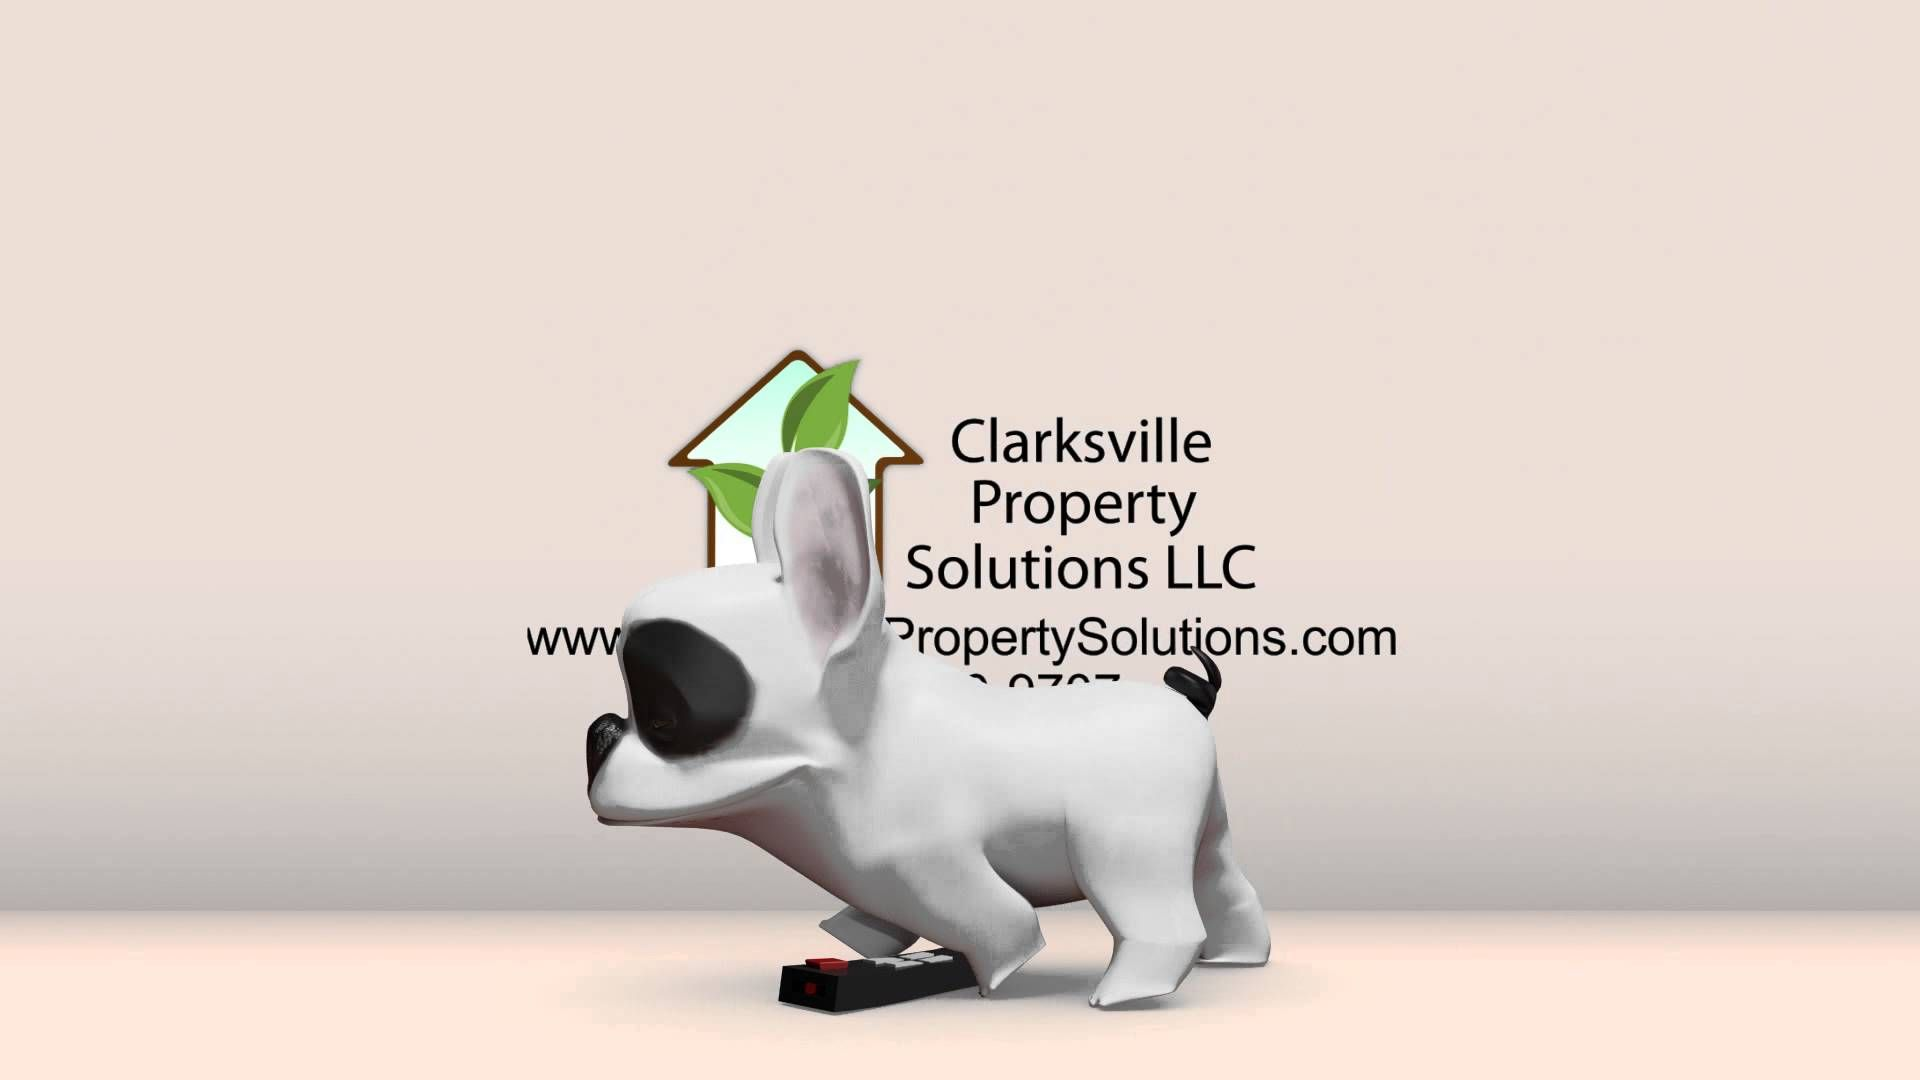 Pet Friendly! Rent to Own Homes Clarksville TN Bad Credit OK